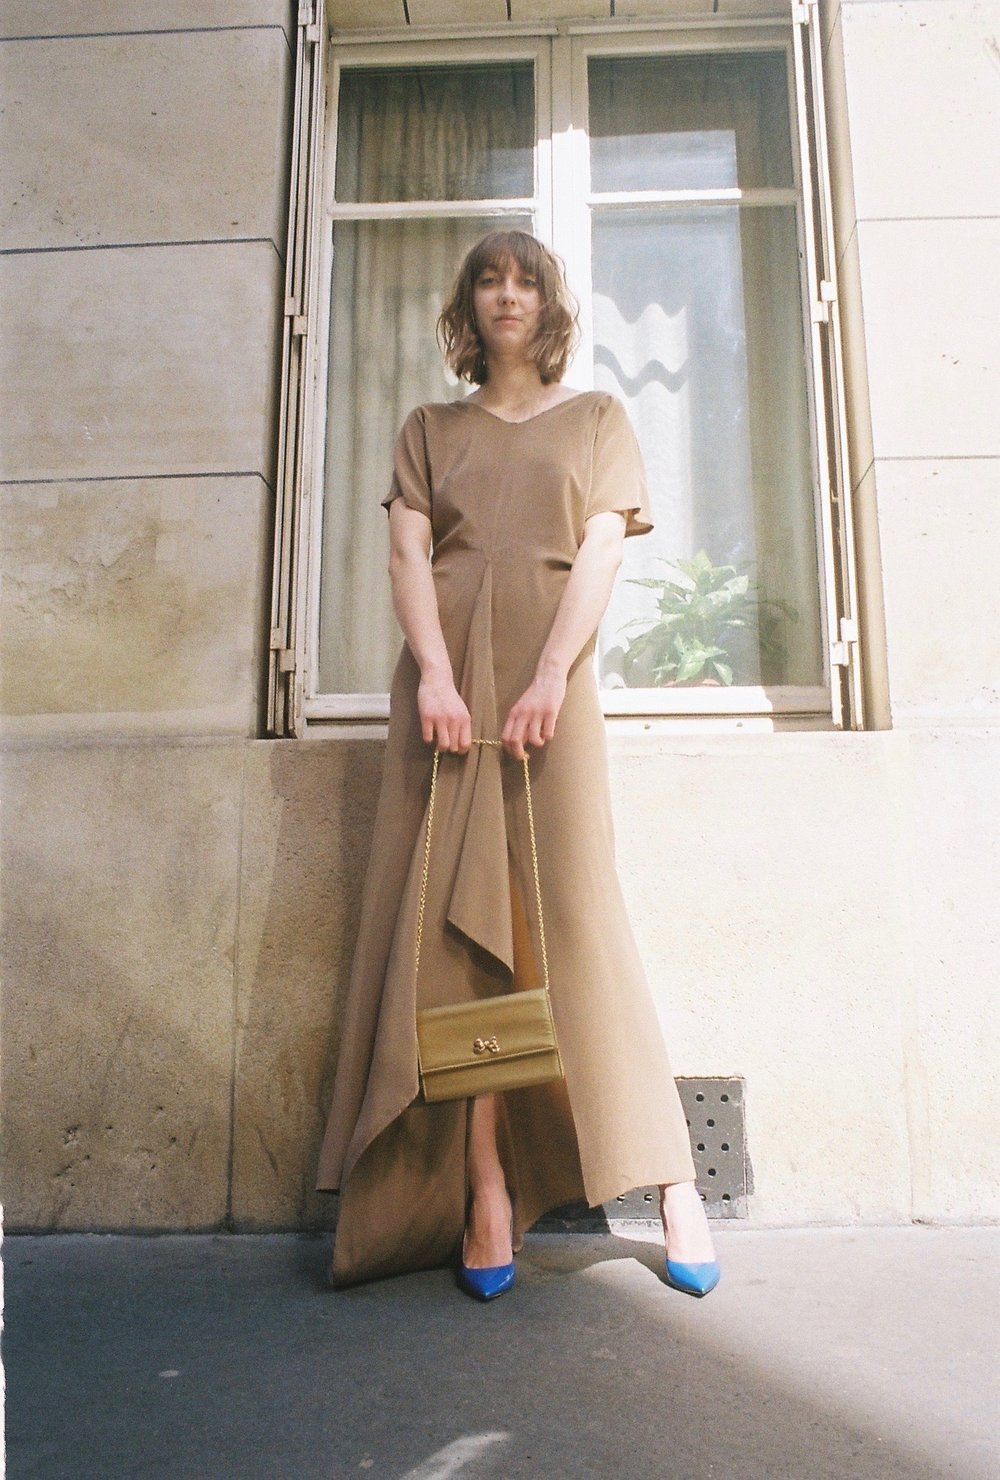 dress  MAISON DORIS , boots  REPETTO , bag  NINA RICCI  VINTAGE